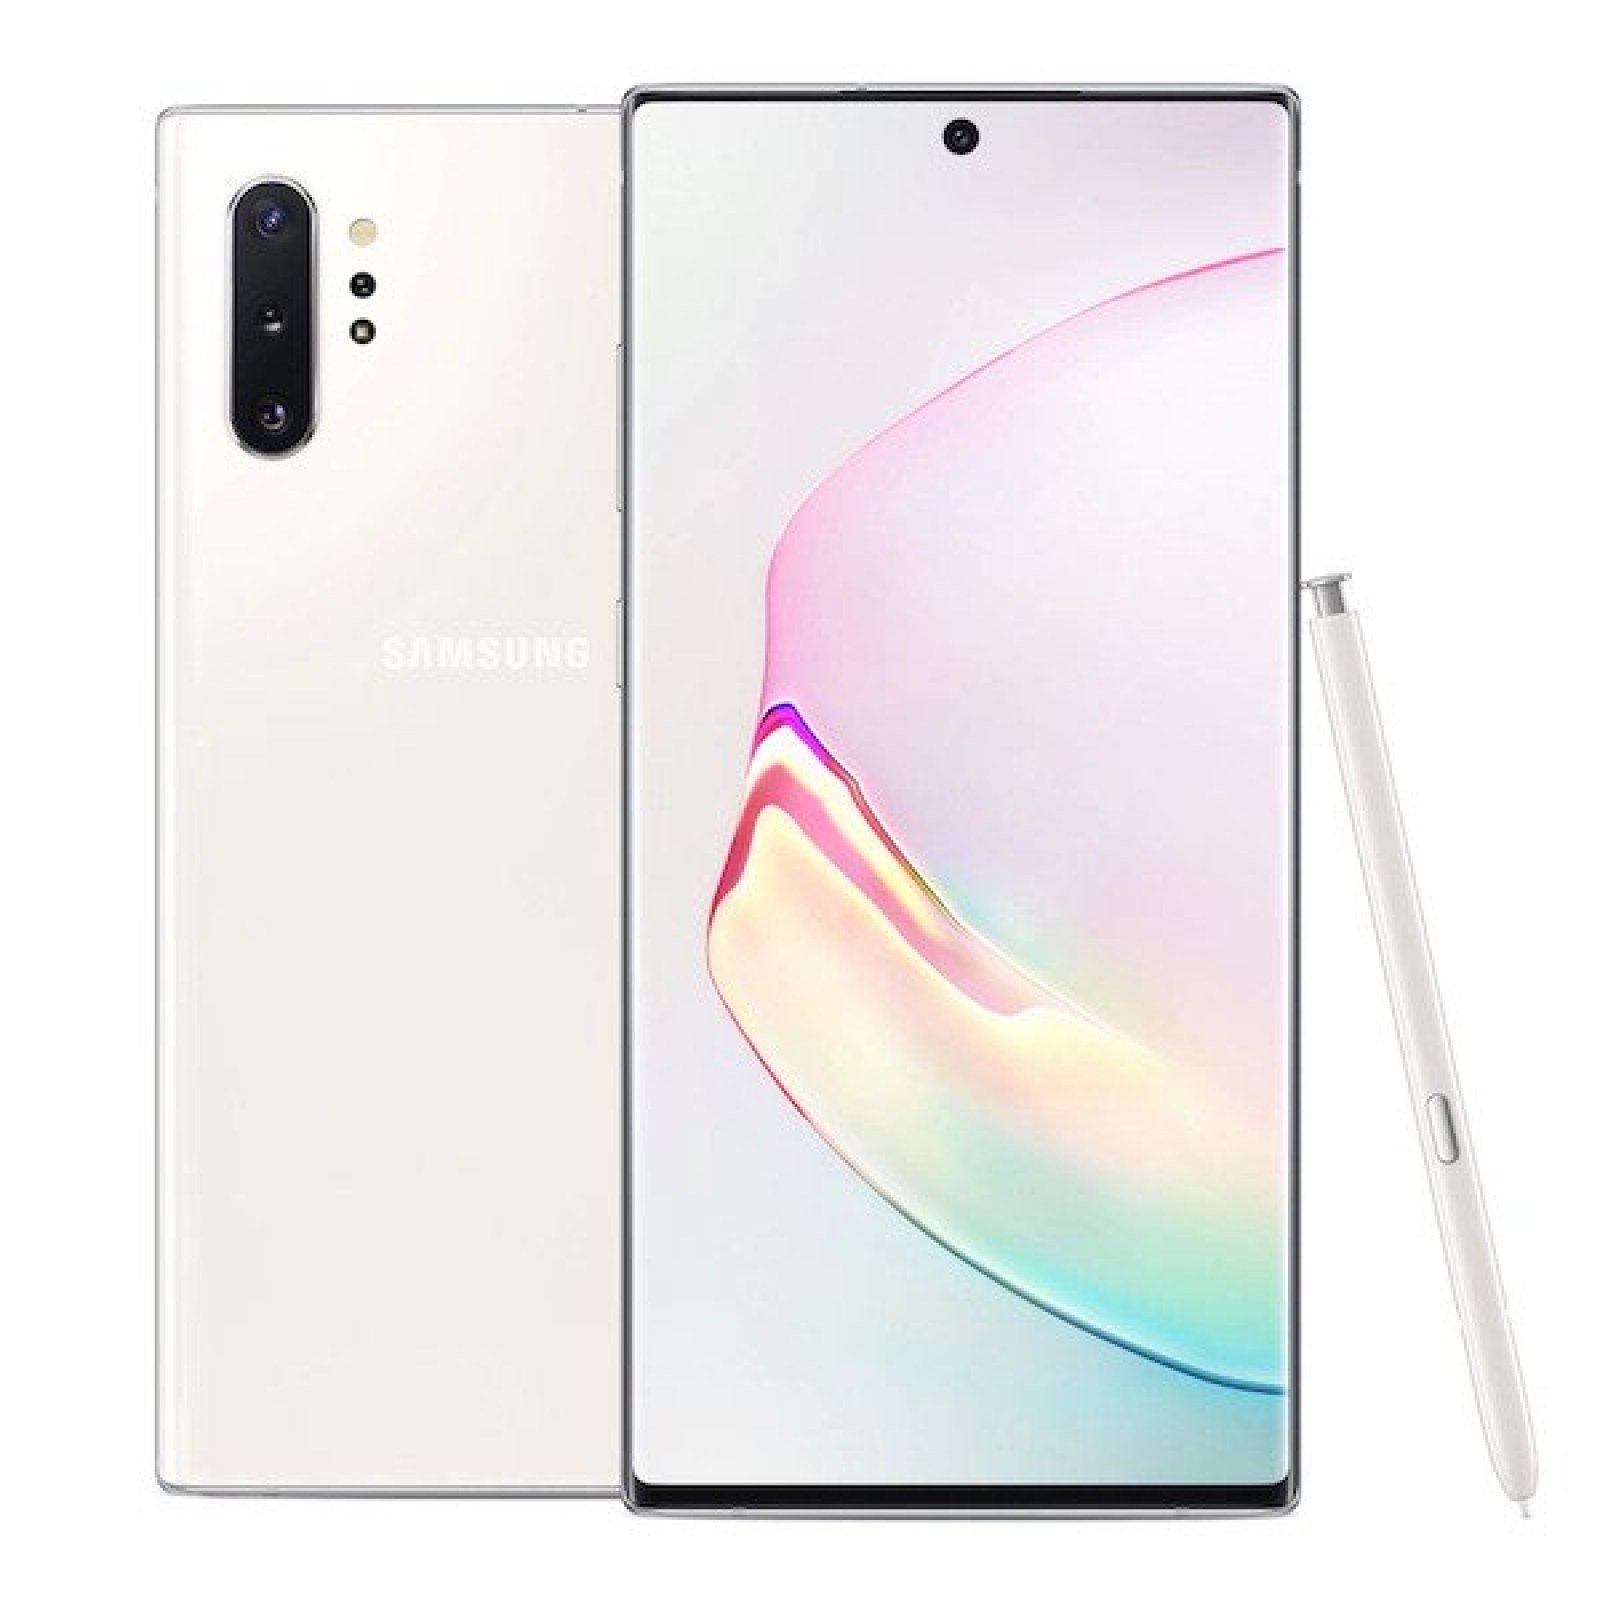 Samsung Galaxy Note 10 Plus Specs: Waterproof, SD Card, Colors, Camera &  More